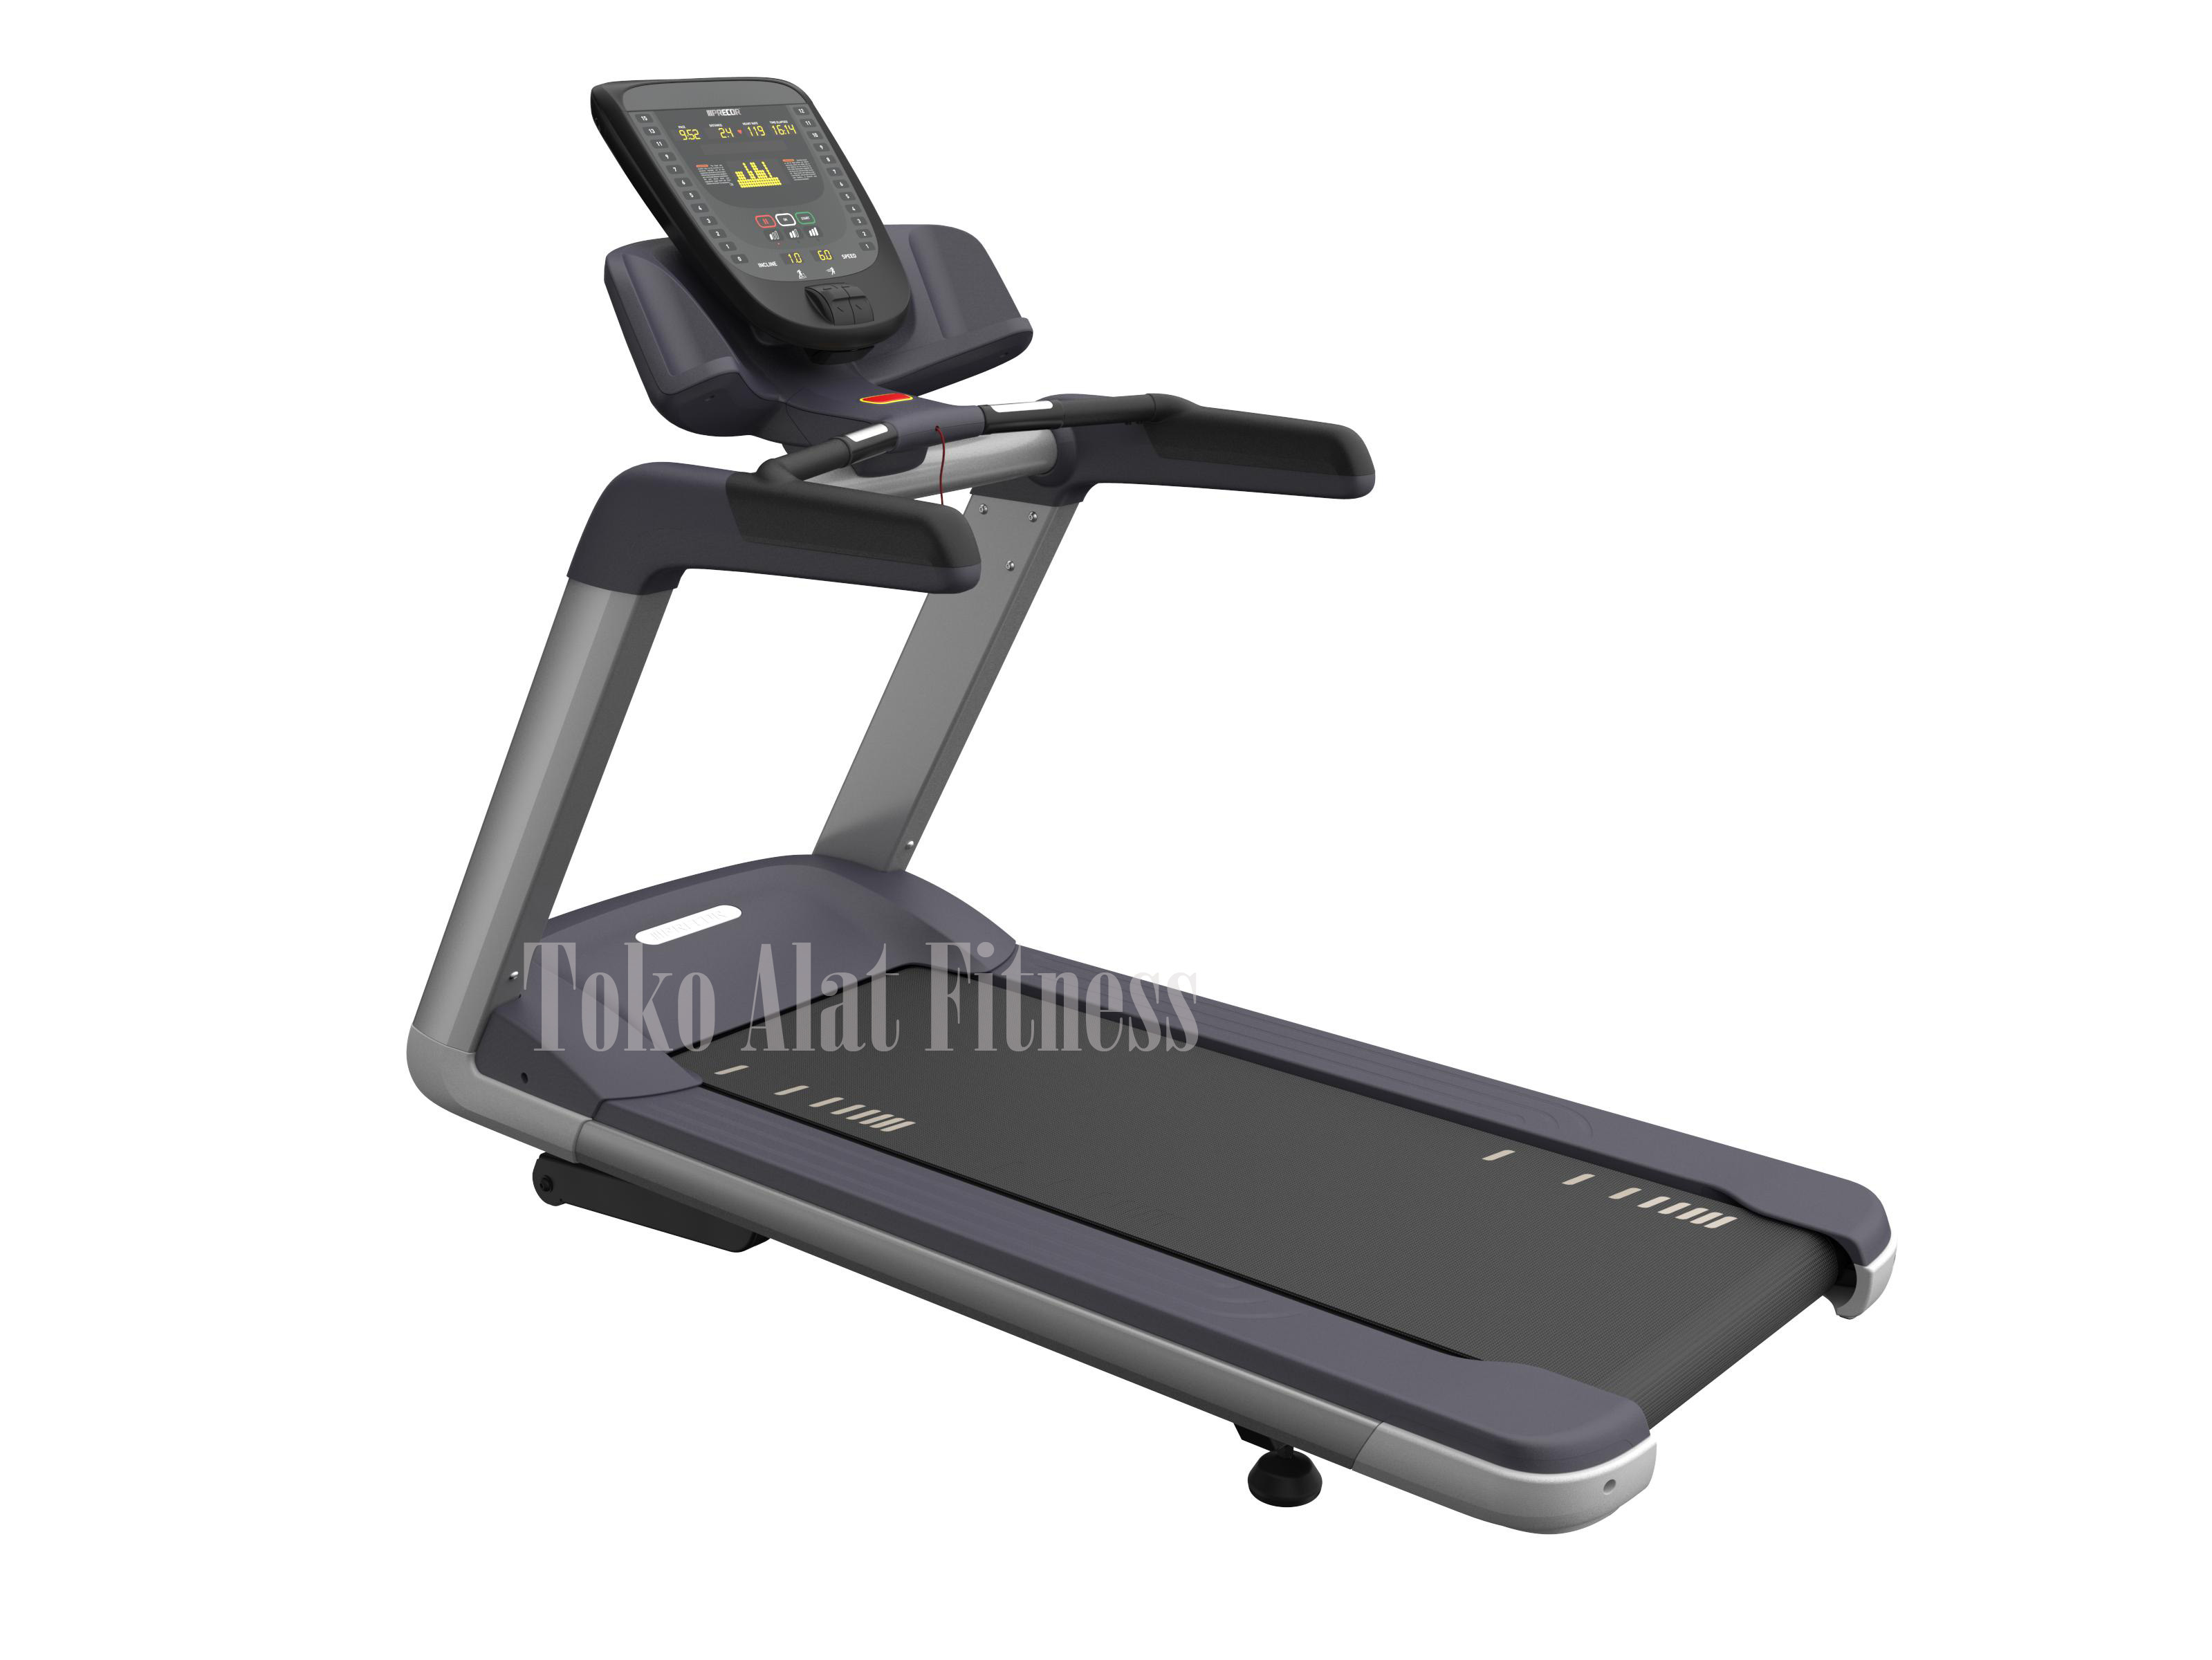 Precor Treadmill 731 wtr b - Commercial Precor Treadmill 4 HP AC TRM 731